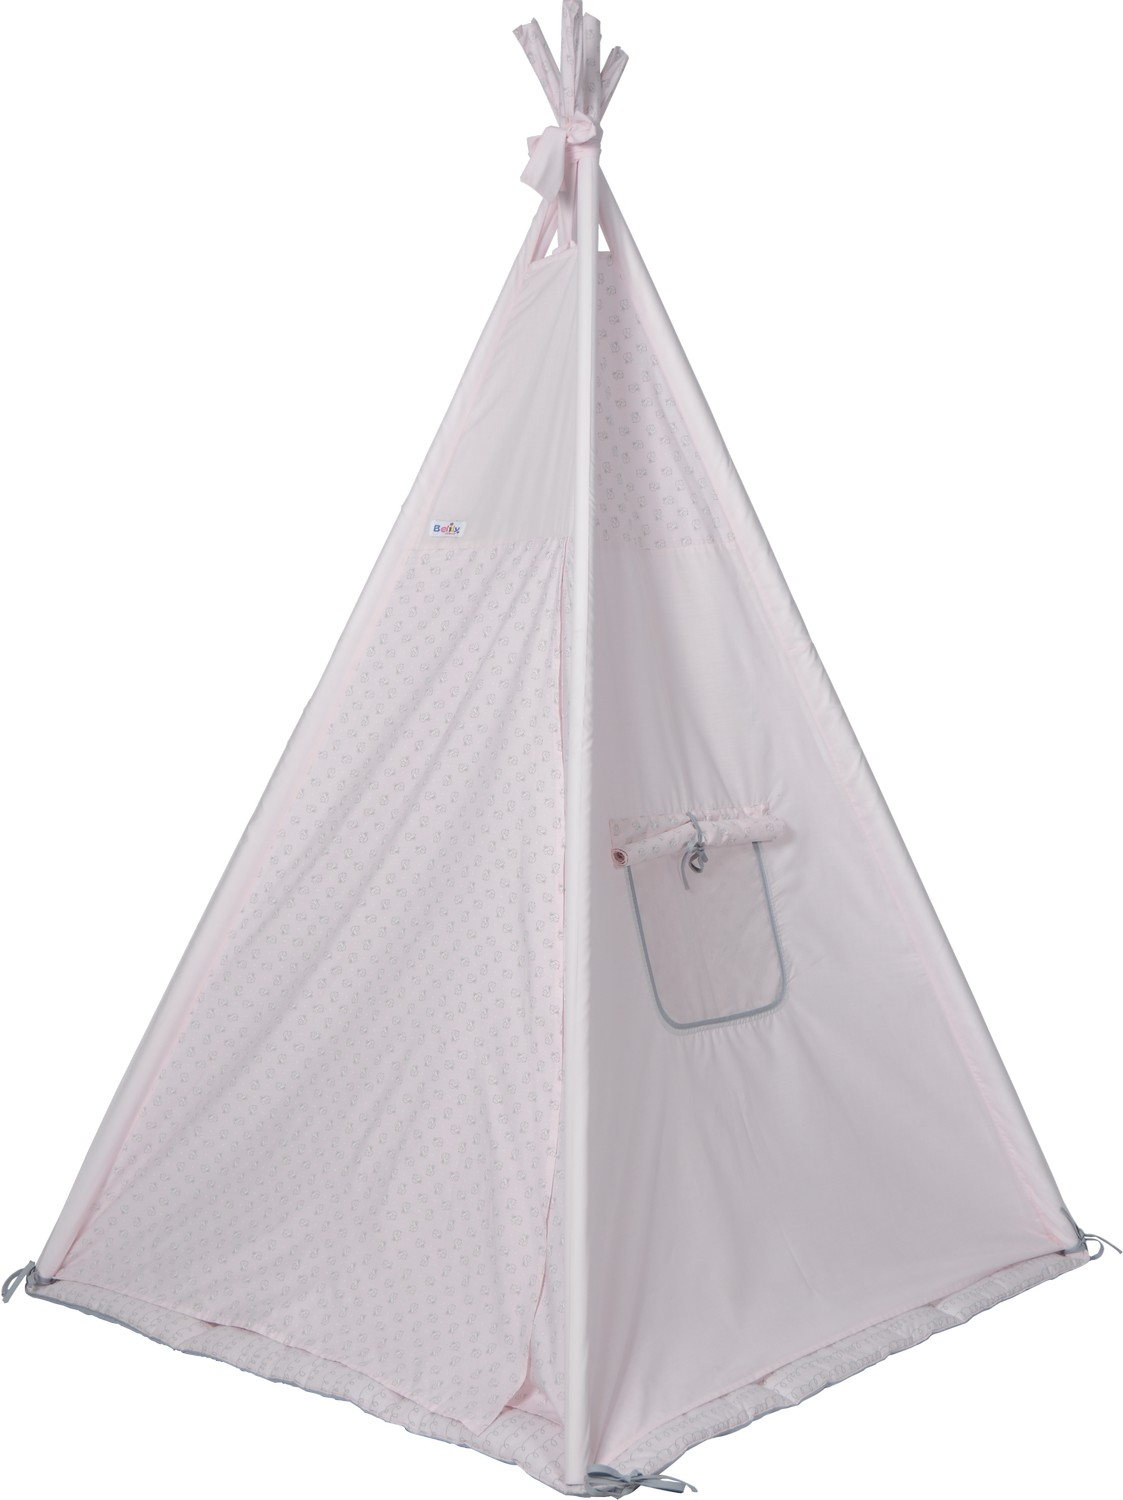 Belily Little Hideout Lilly Play Teepee / Play Tent  sc 1 st  Belily World & Belily World - play tent - Lilly play teepee